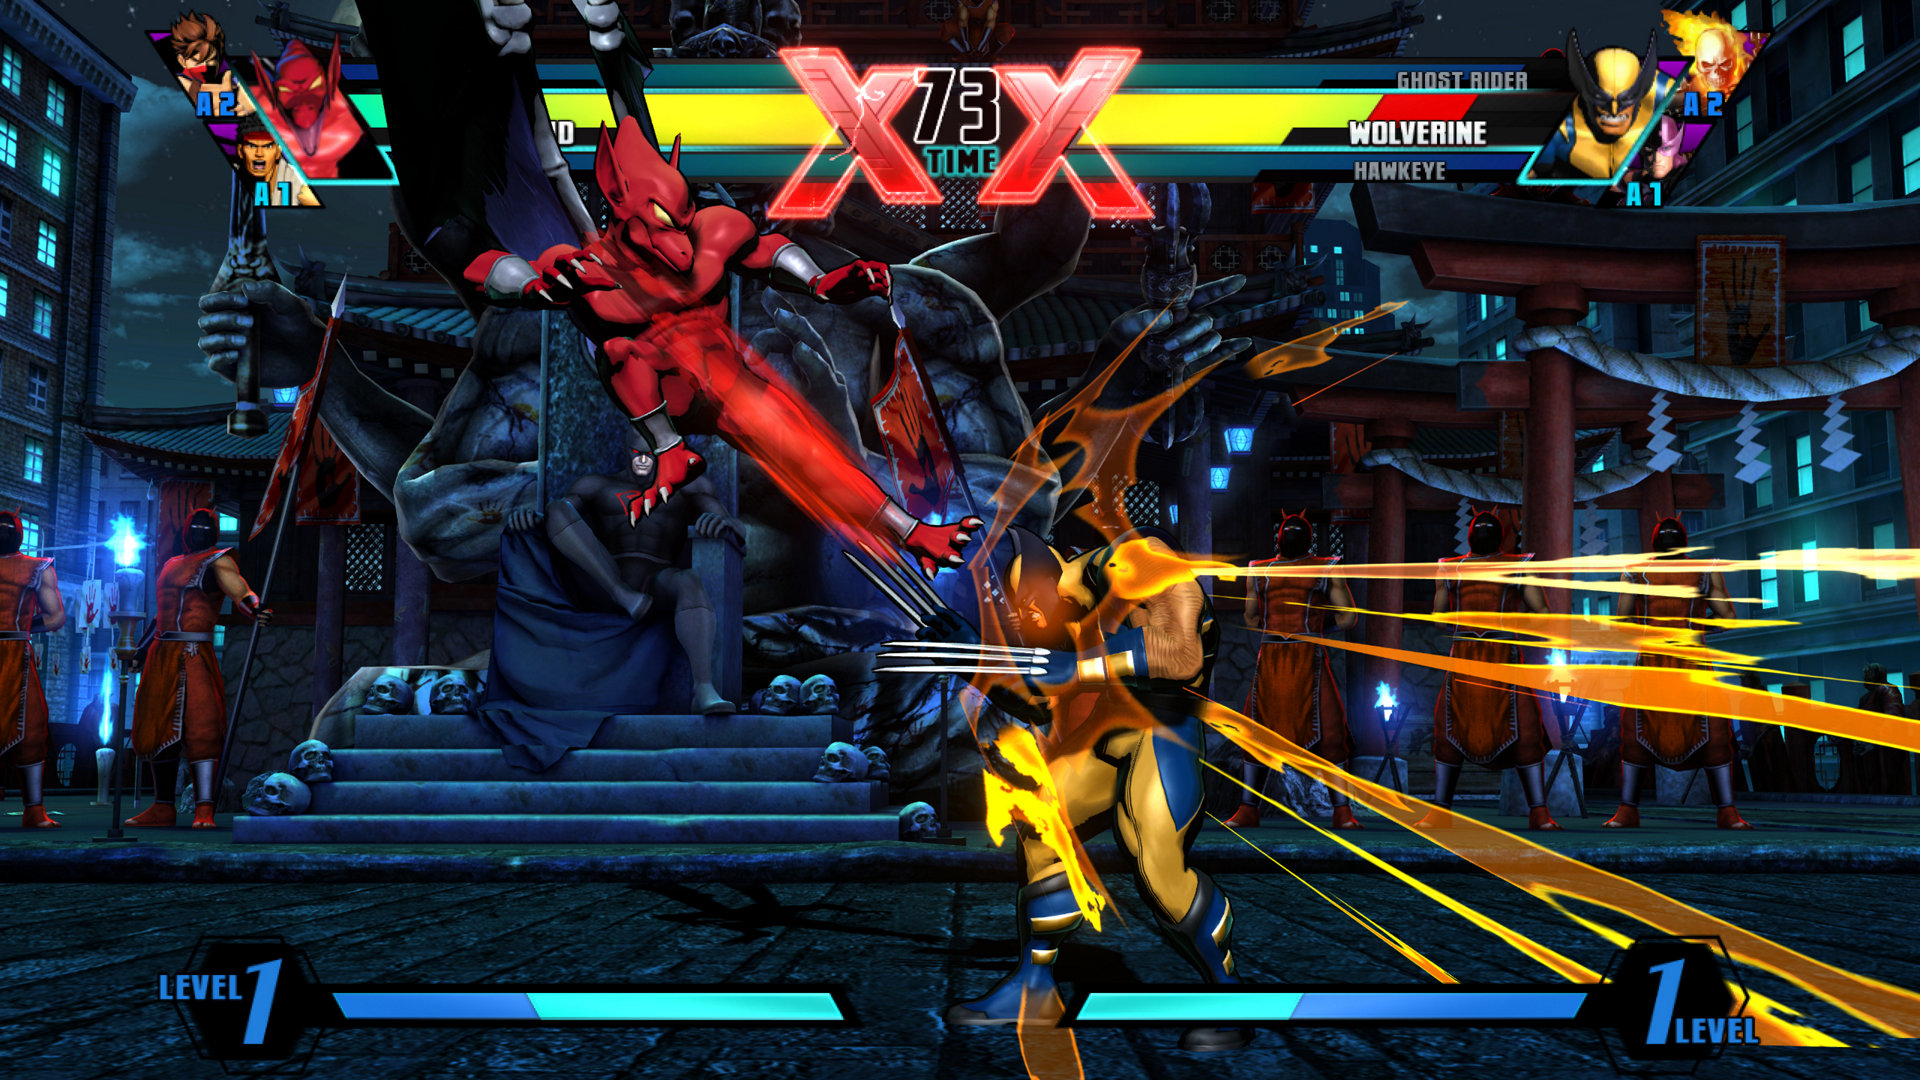 Ultimate Marvel vs. Capcom 3 on PlayStation 4 Impressions